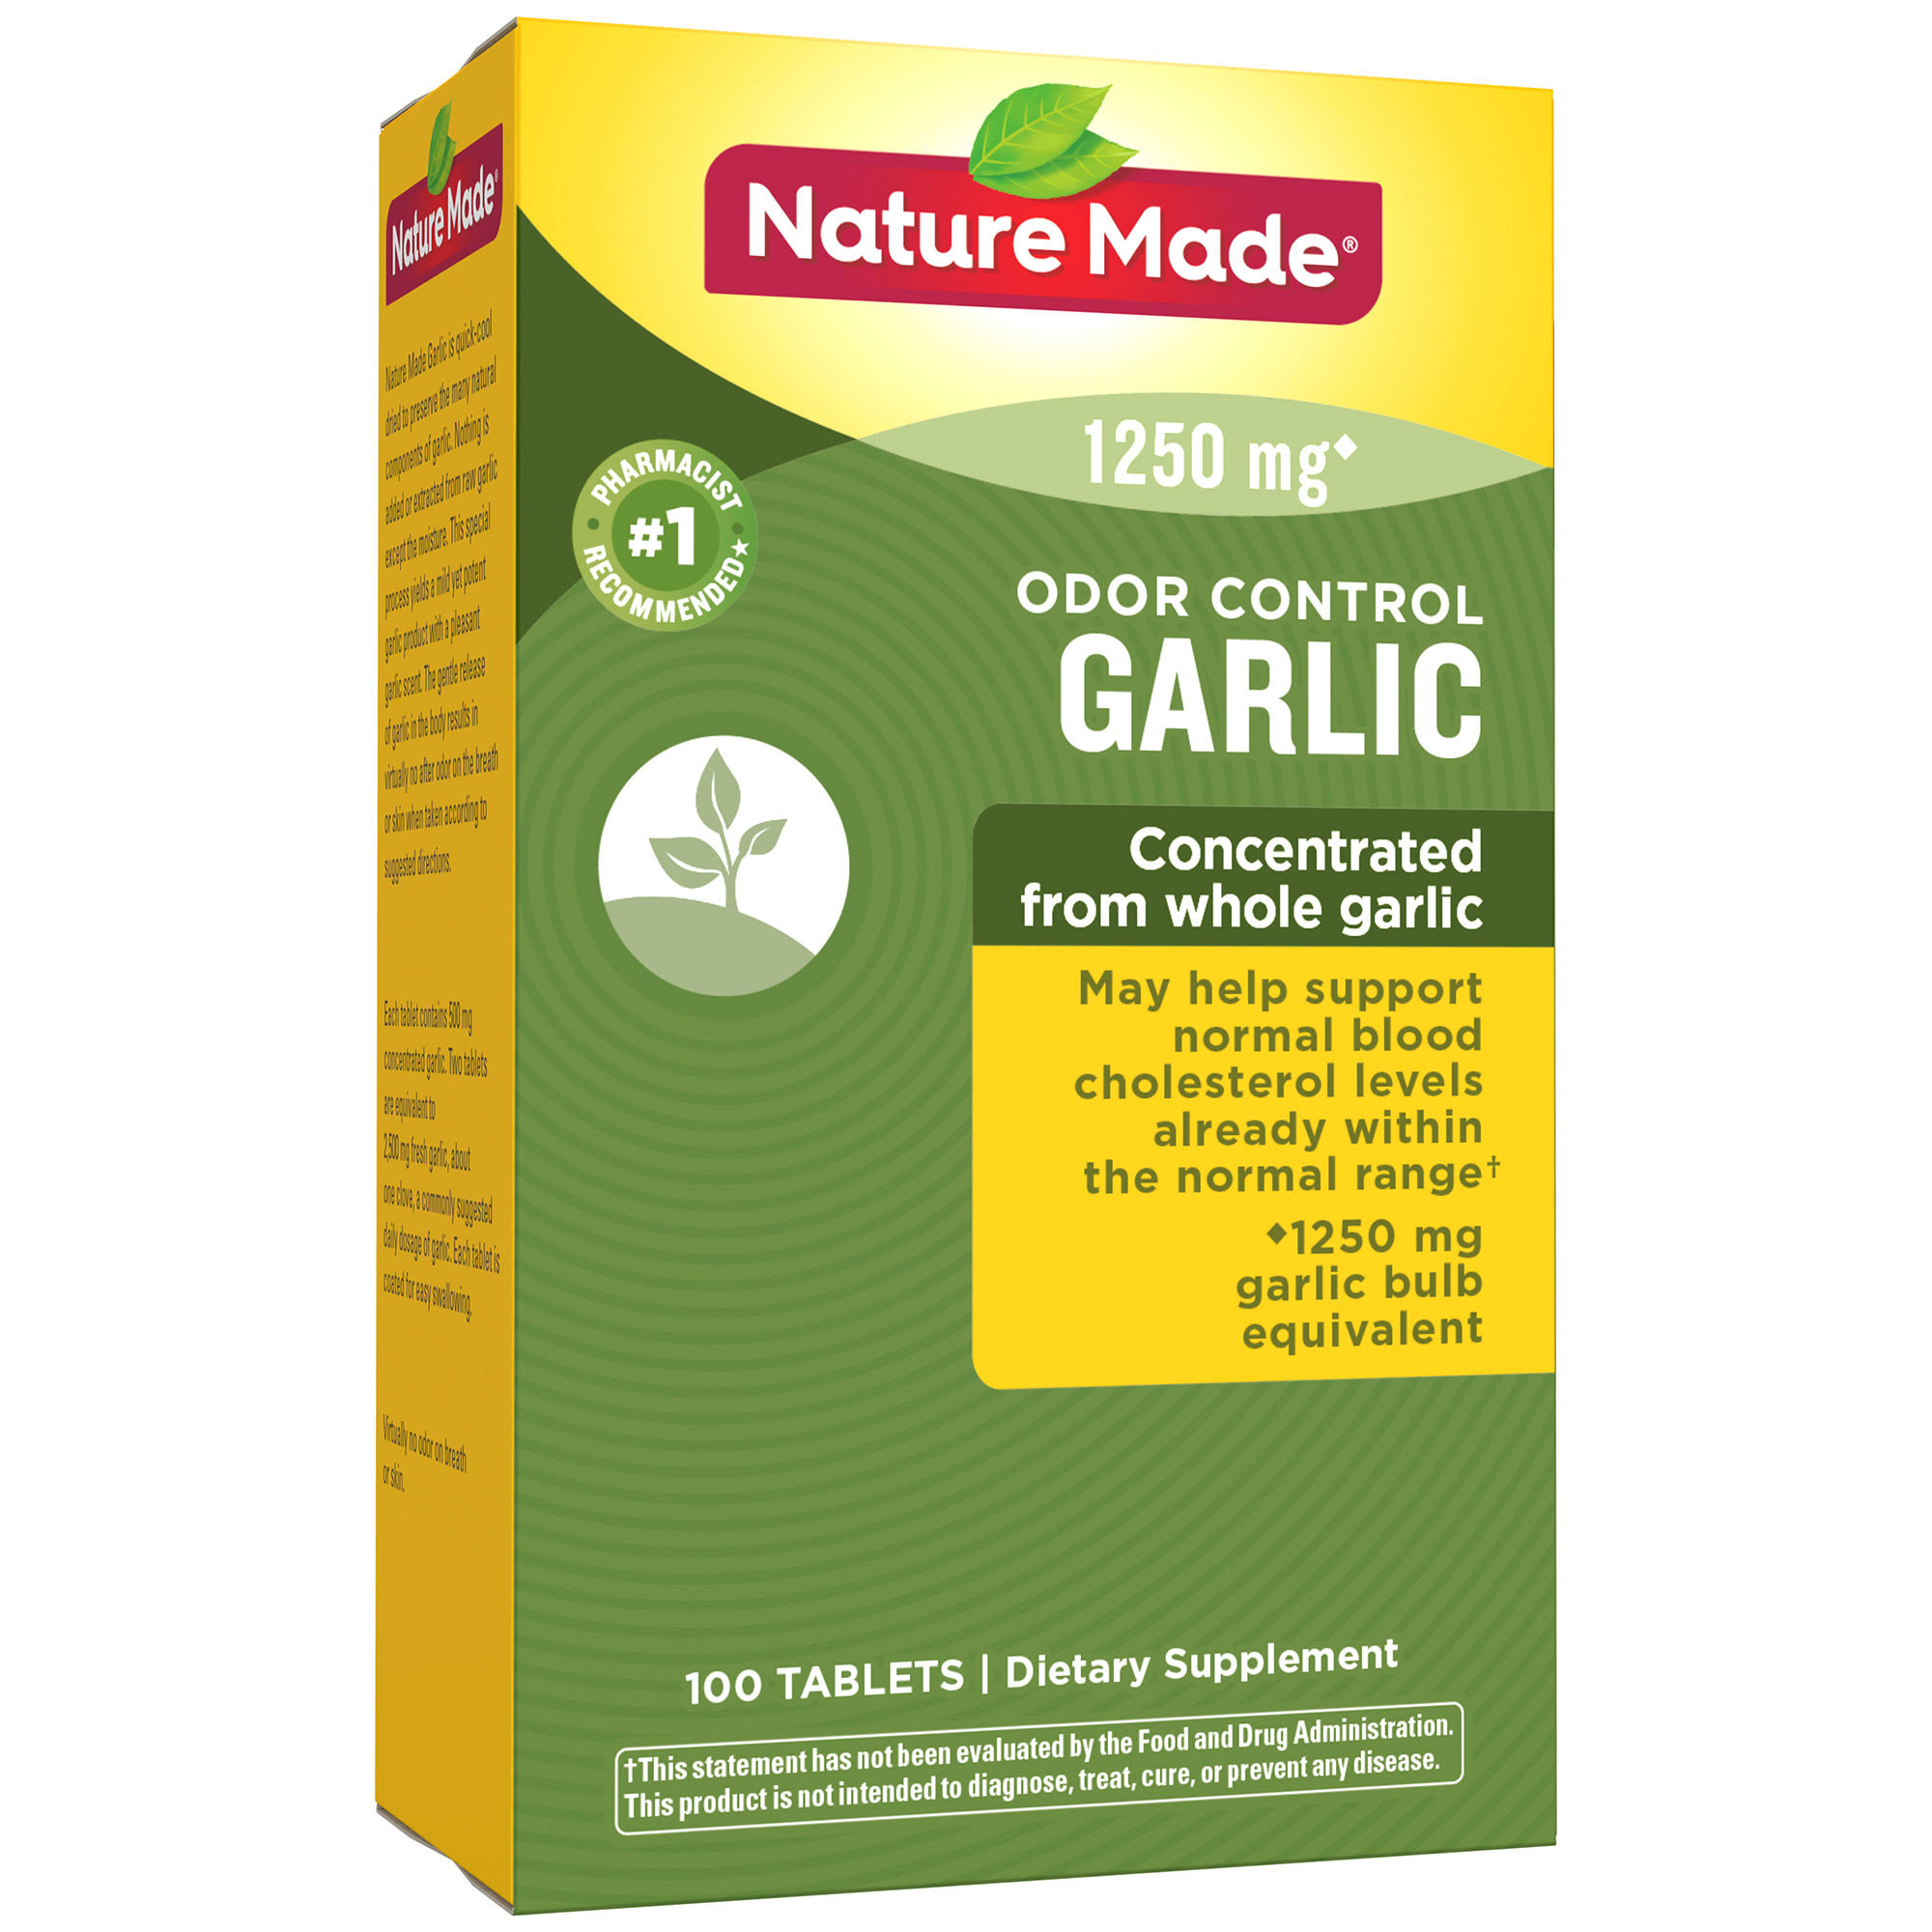 Nature Made Odor Control Garlic Supplement - 1250mg, 100ct